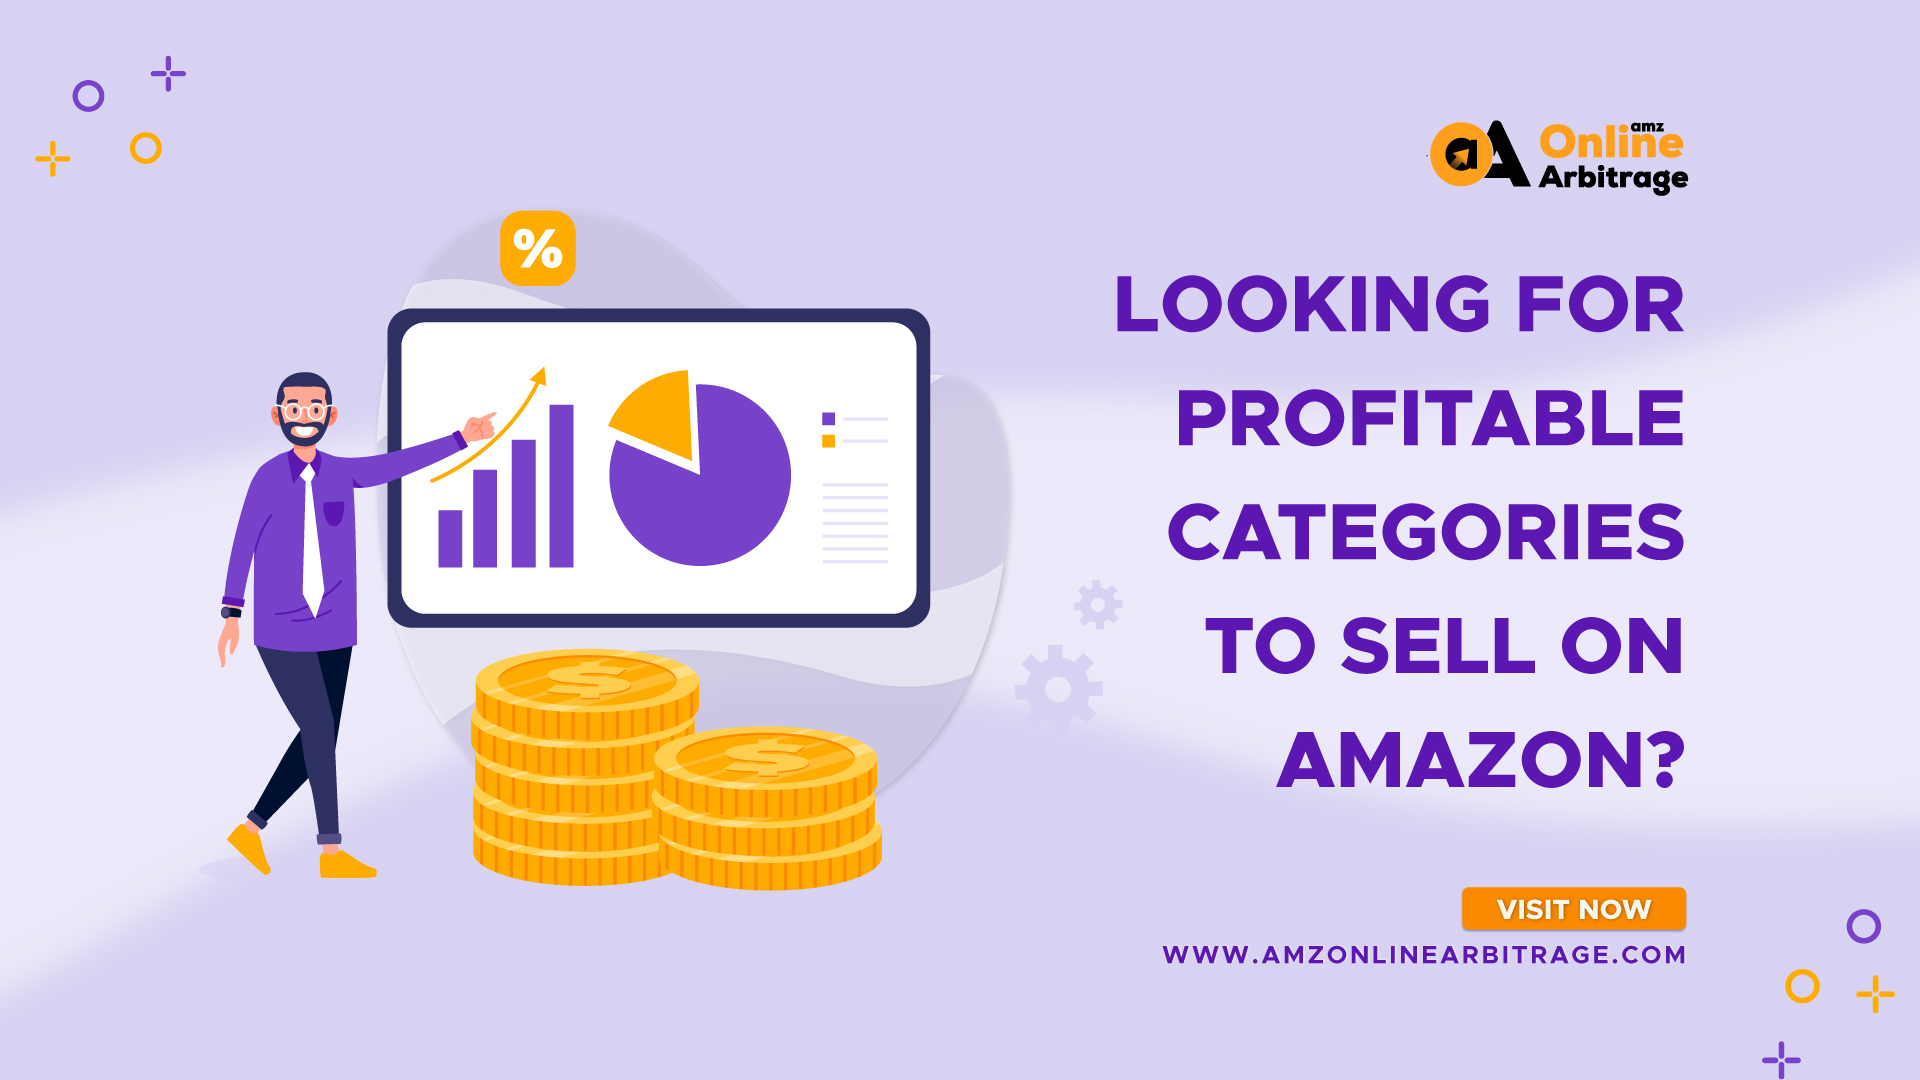 LOOKING FOR PROFITABLE CATEGORIES TO SELL ON AMAZON?